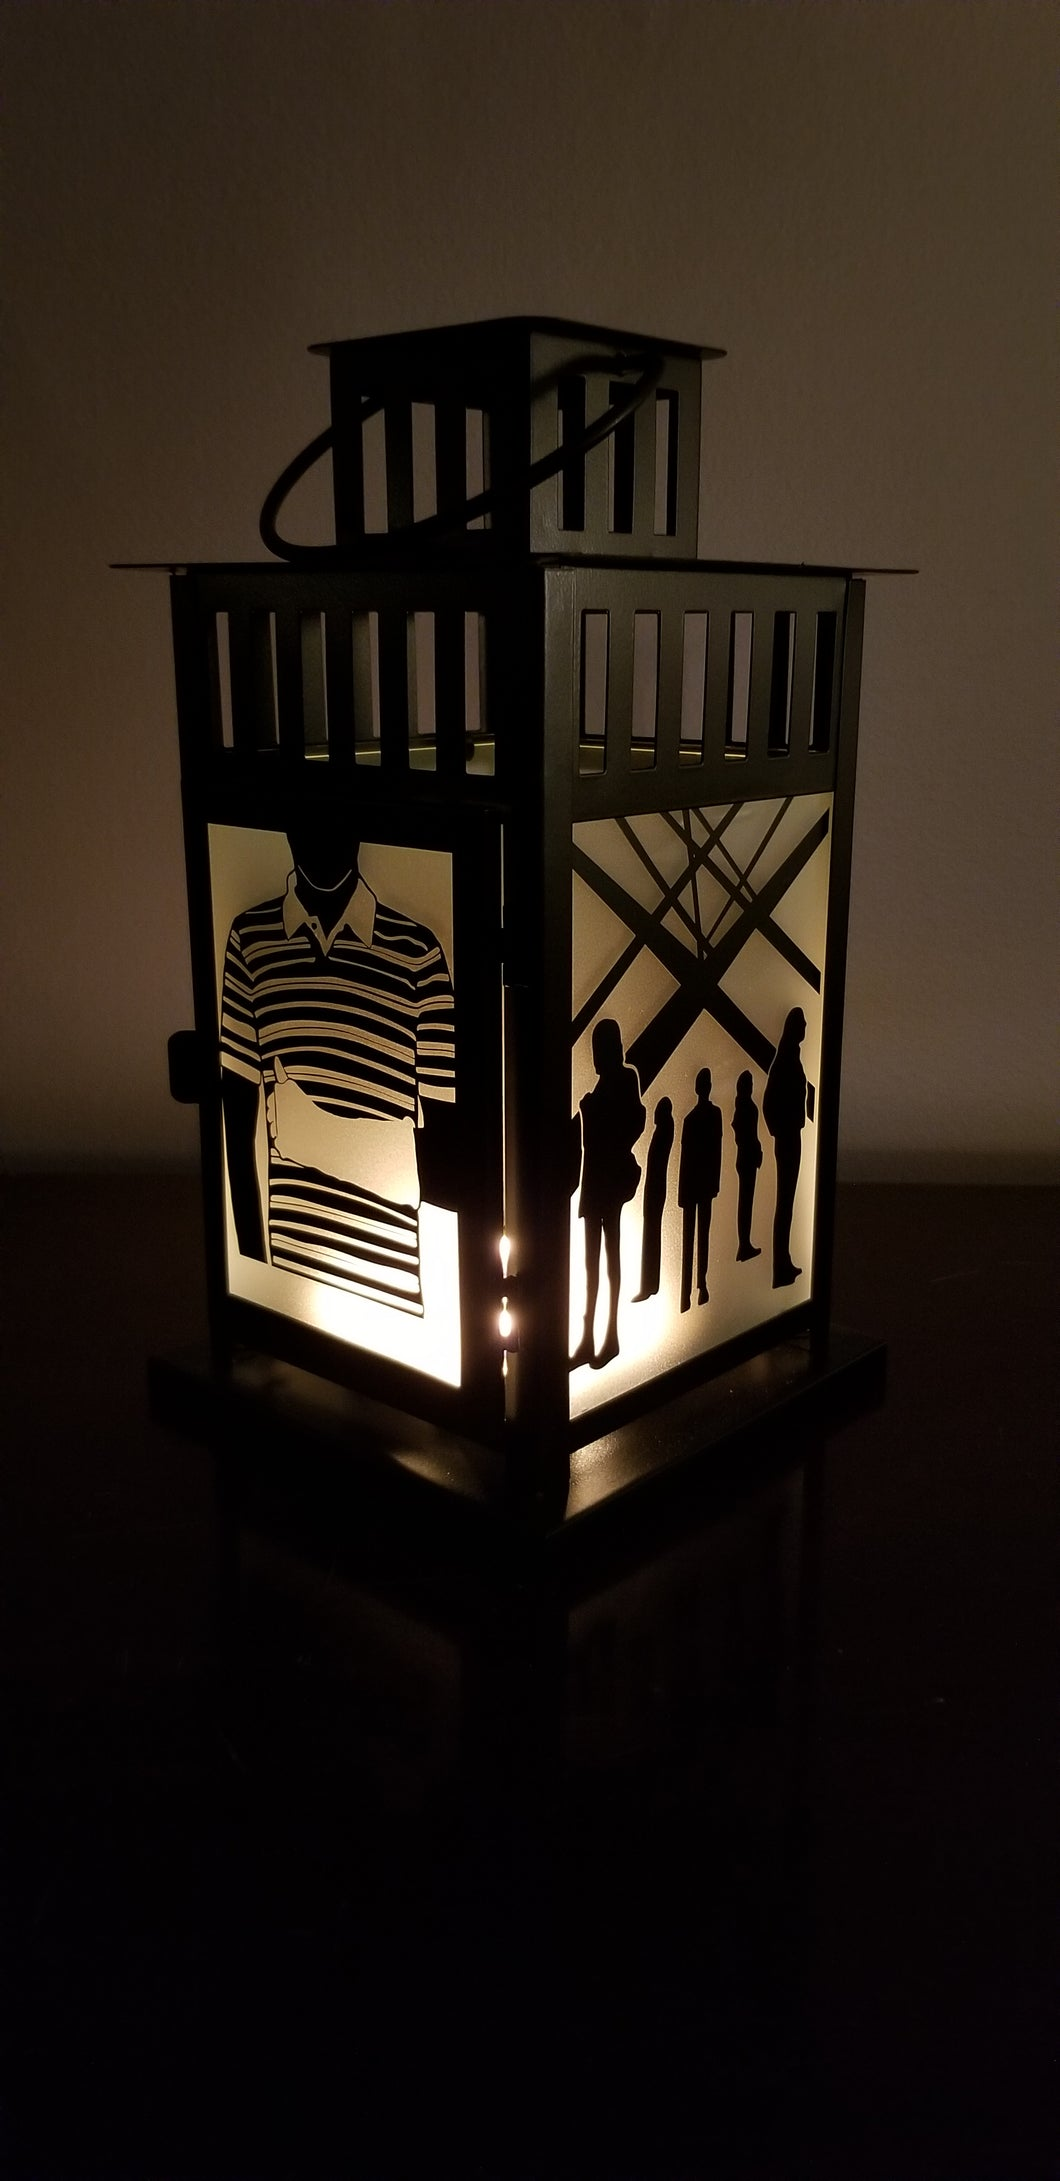 Dear Evan Hansen Inspired Lantern